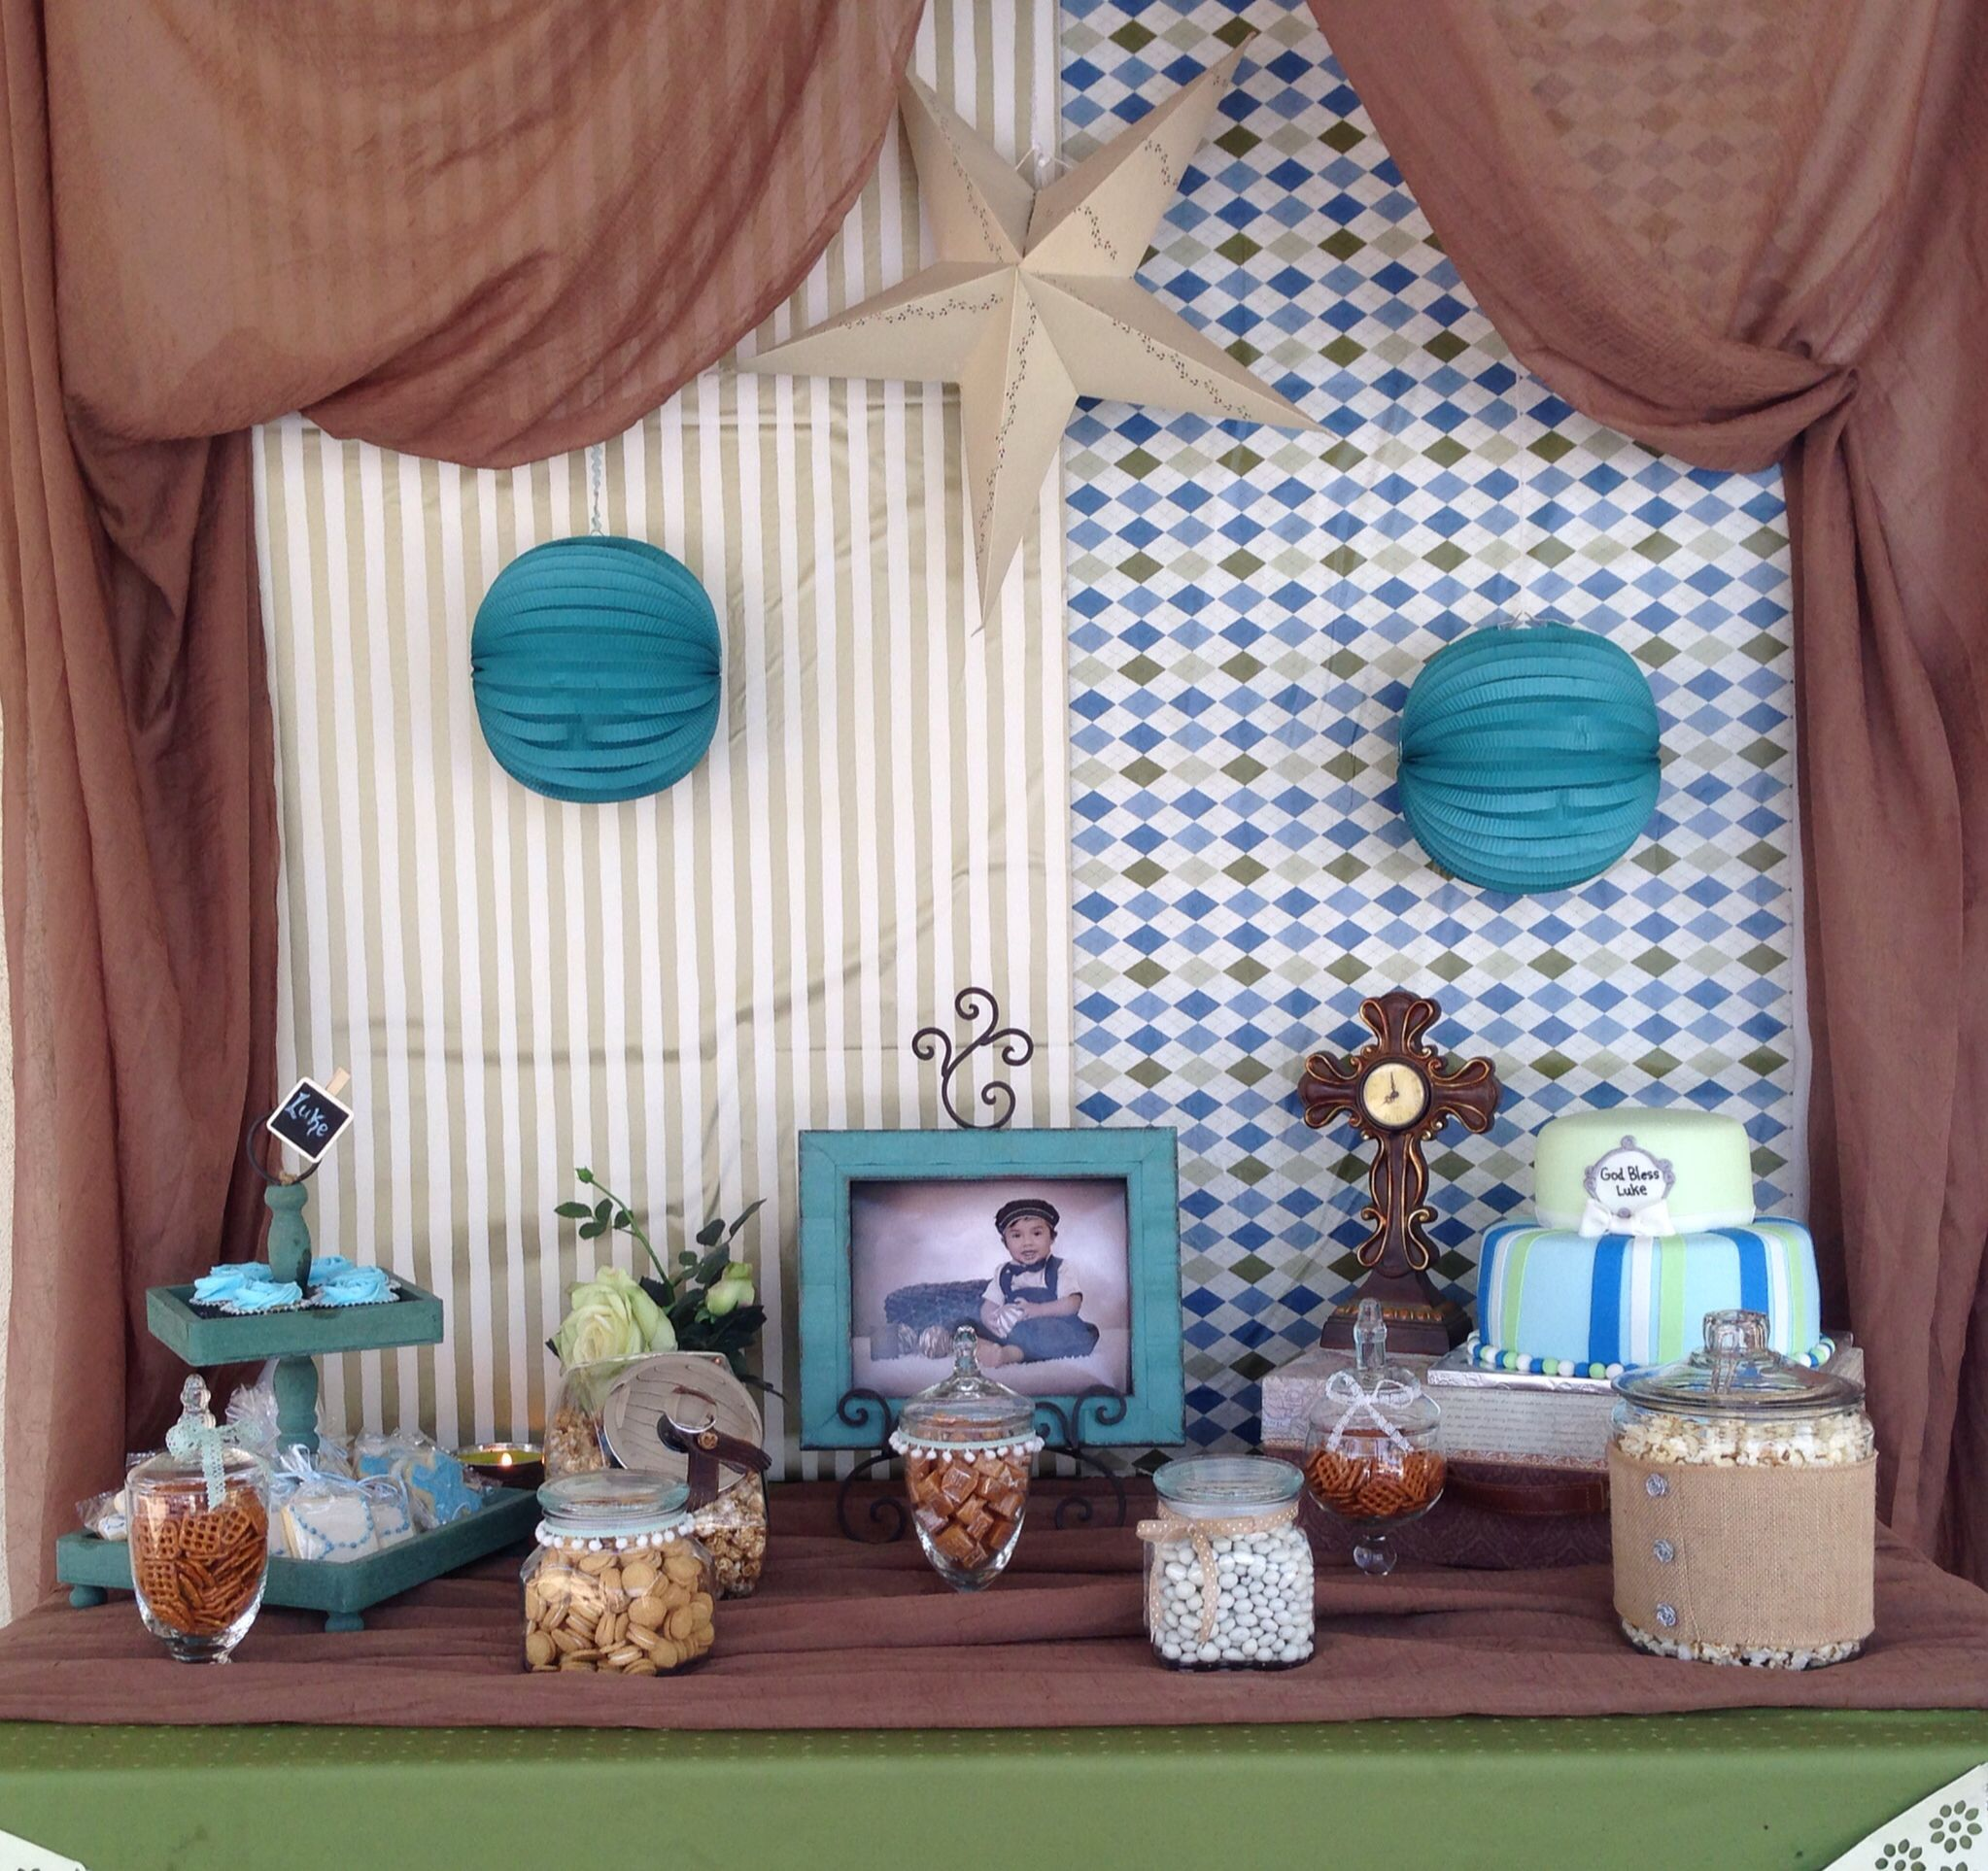 Baptism, Boy Baptism, Boy Party, Decorations, Christening, Centerpiece, Vintage,